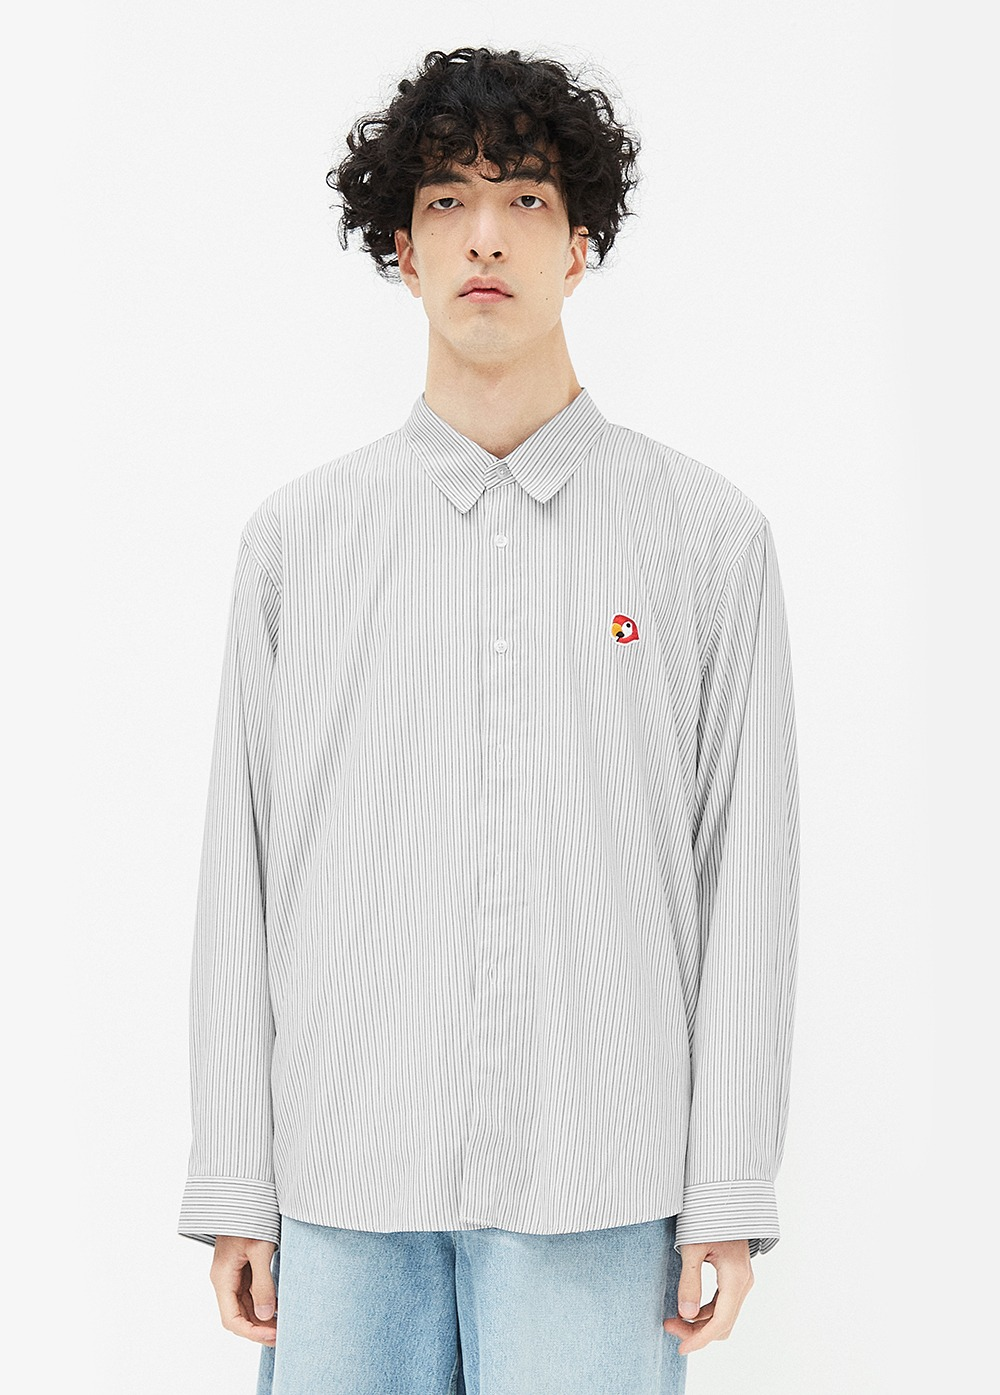 KANCO LOGO OXFORD SHIRT stripe black